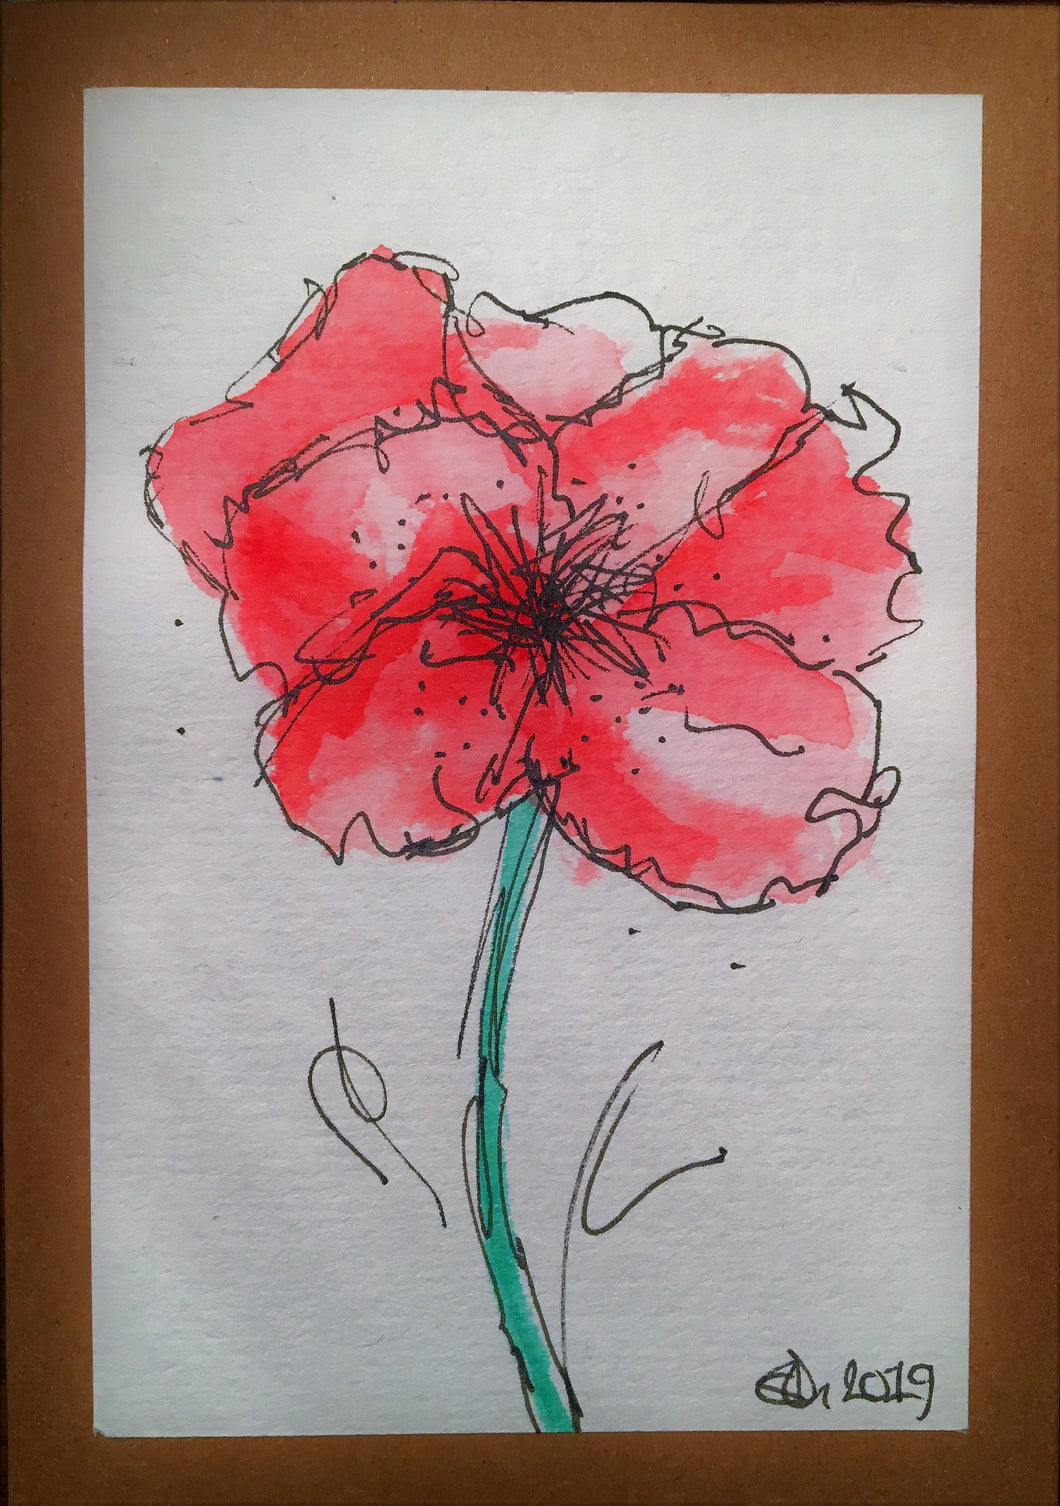 Handpainted Watercolour Greeting Card - Abstract Red/Pink Poppy Flower - eDgE dEsiGn London